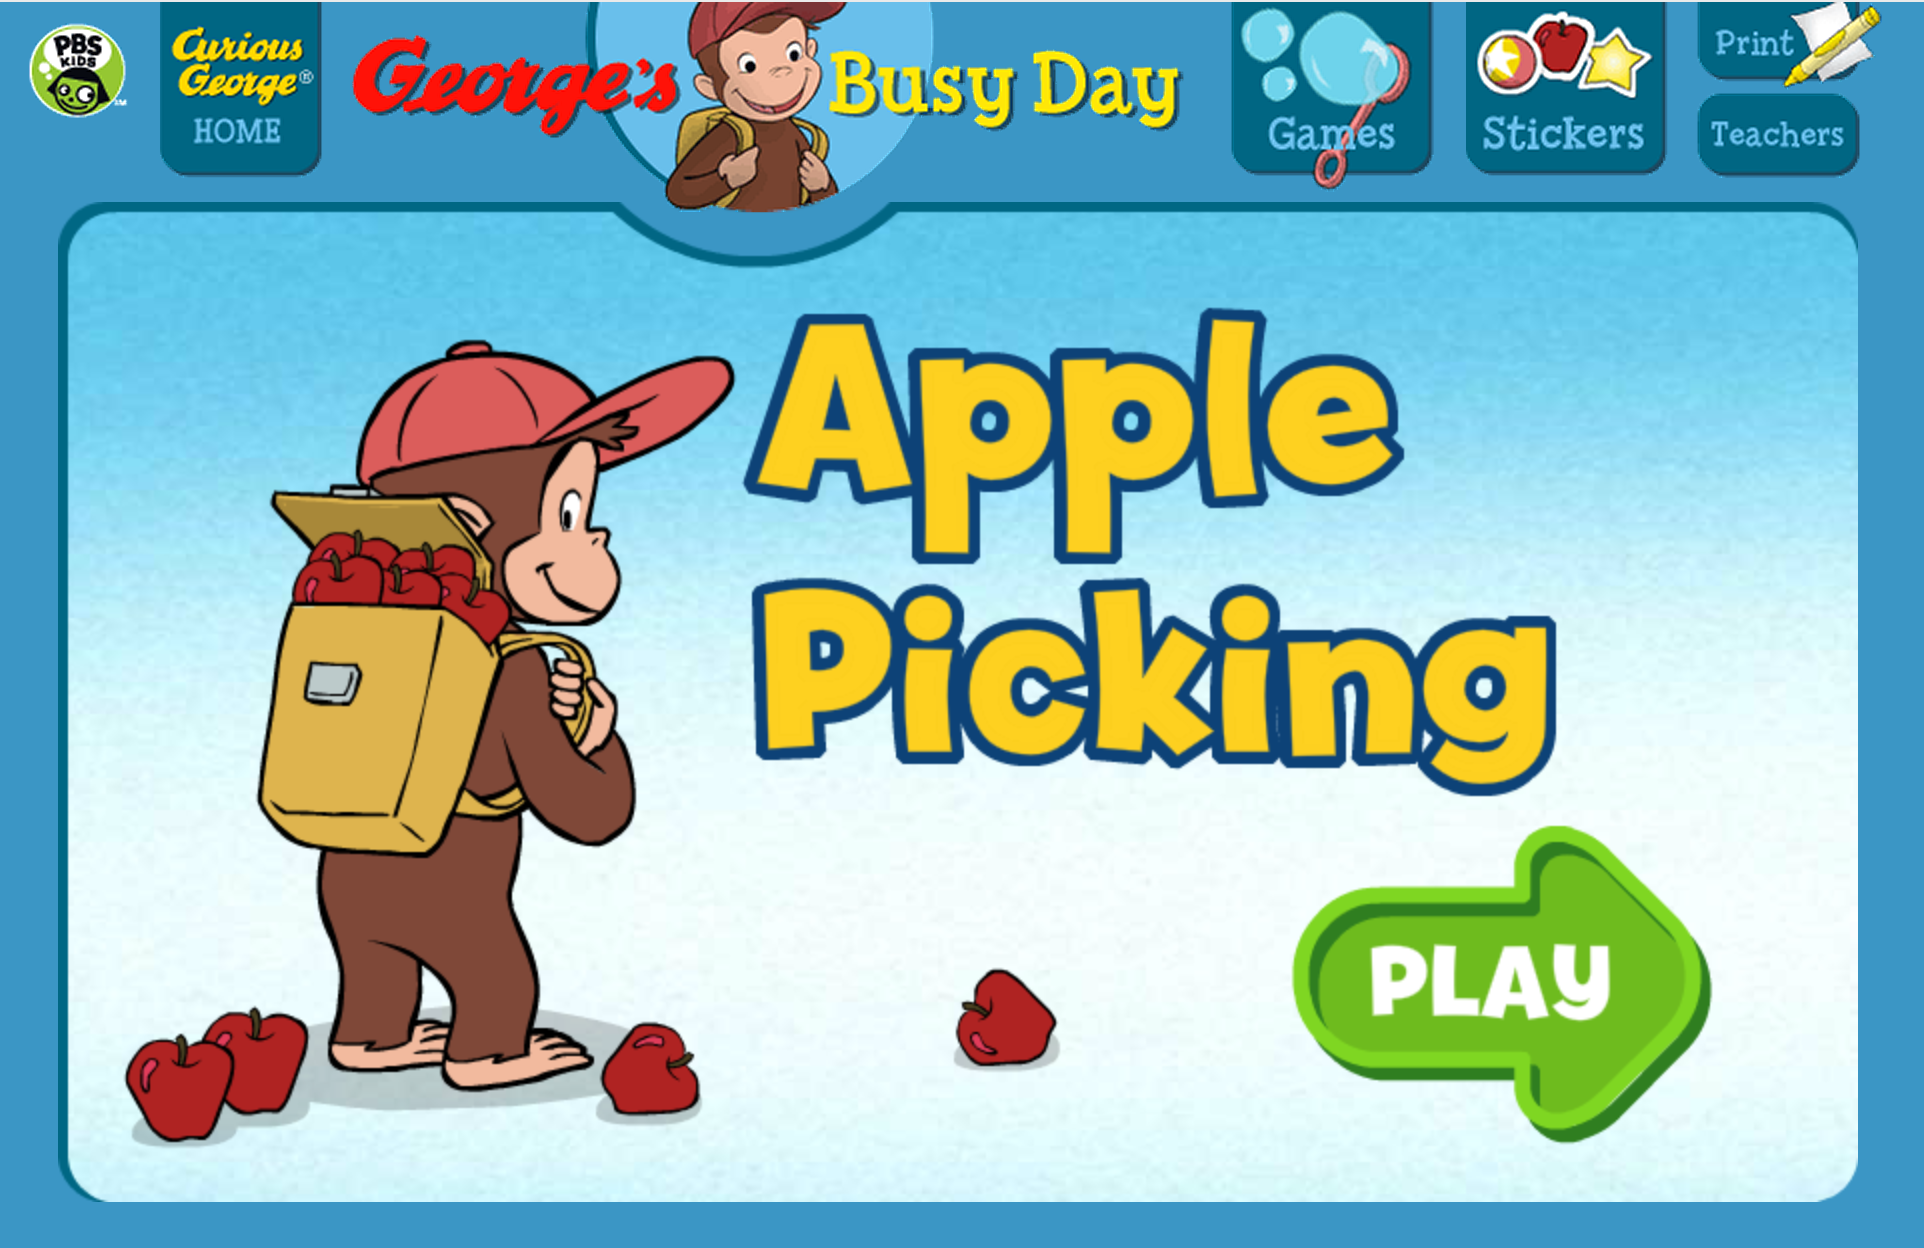 Get Into The Spirit Of The Season Go Apple Picking With Curious